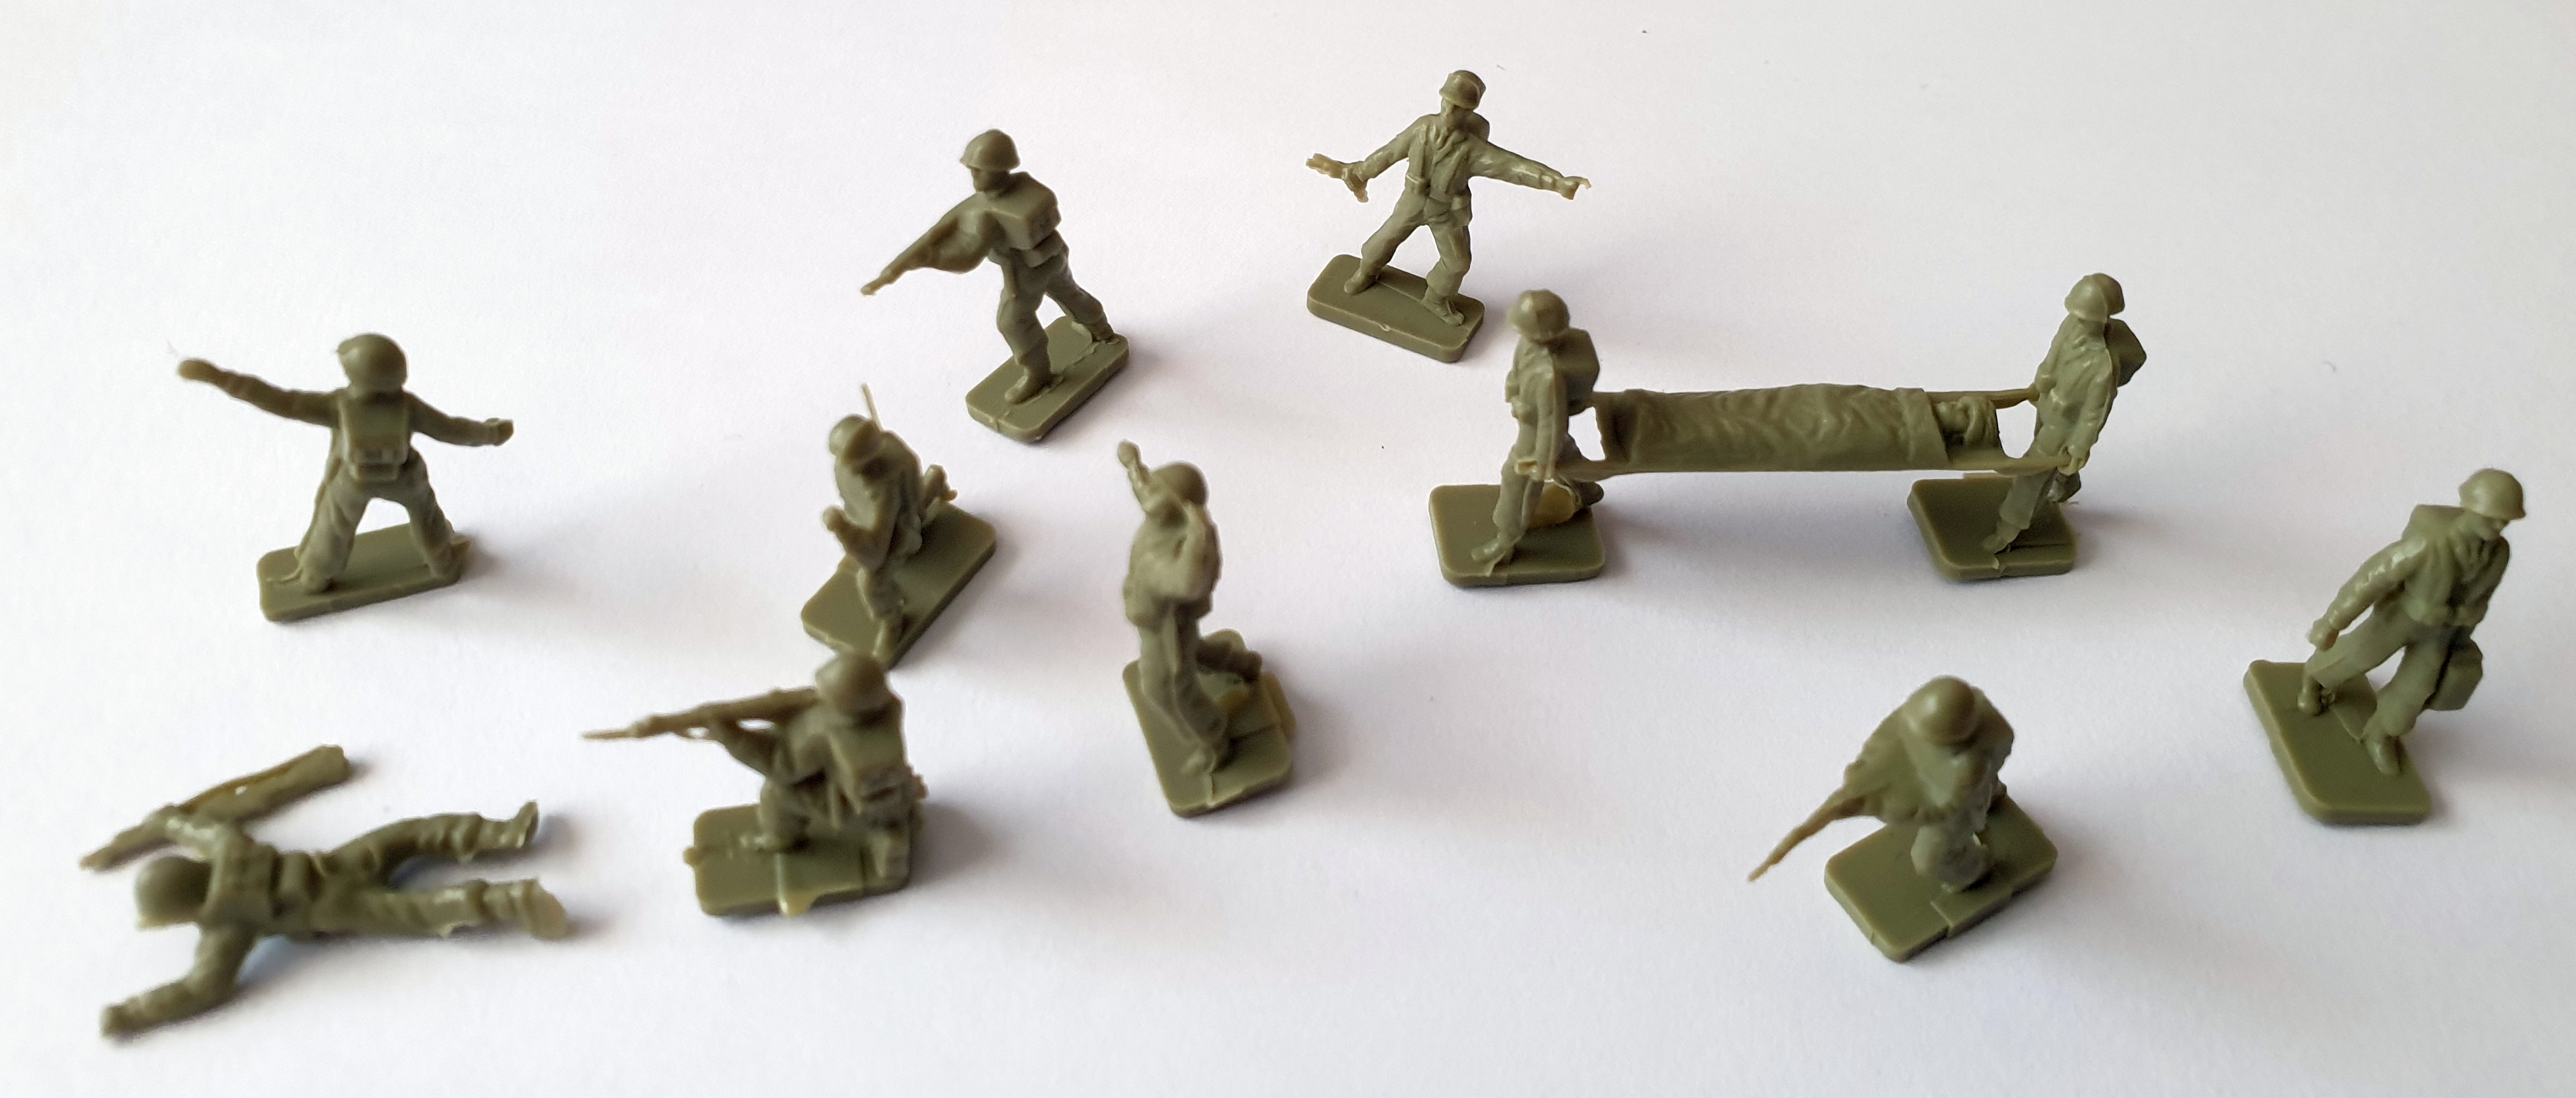 1962 Sugar Puffs Model Soldiers (1)